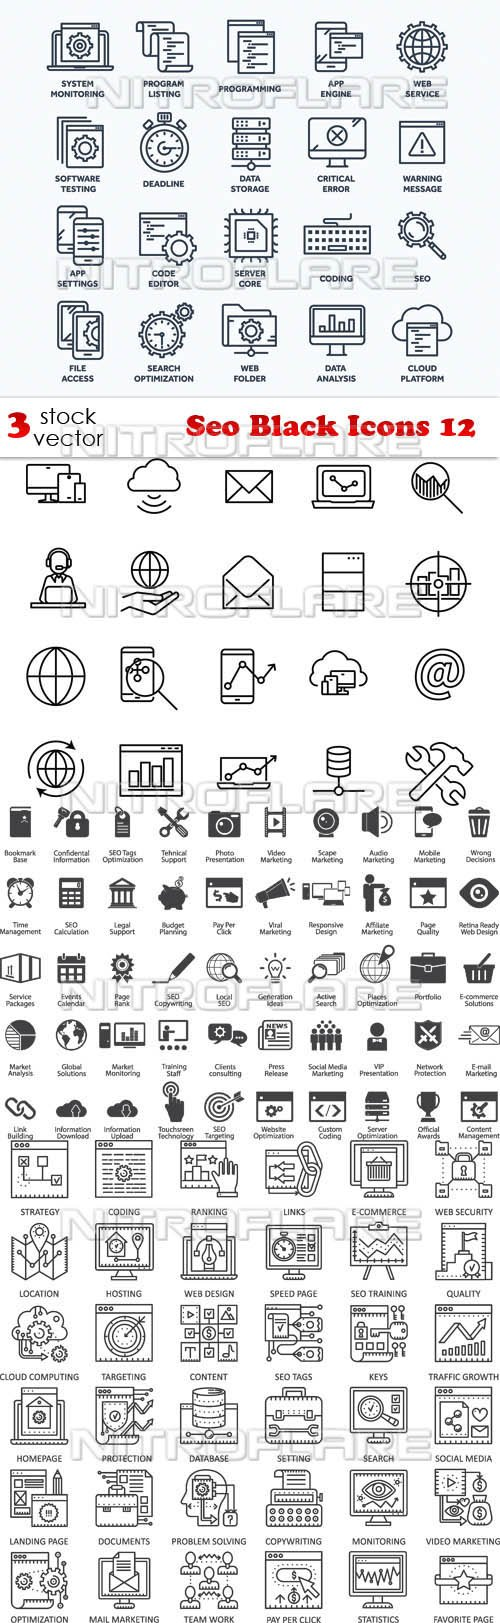 Vectors - Seo Black Icons 12